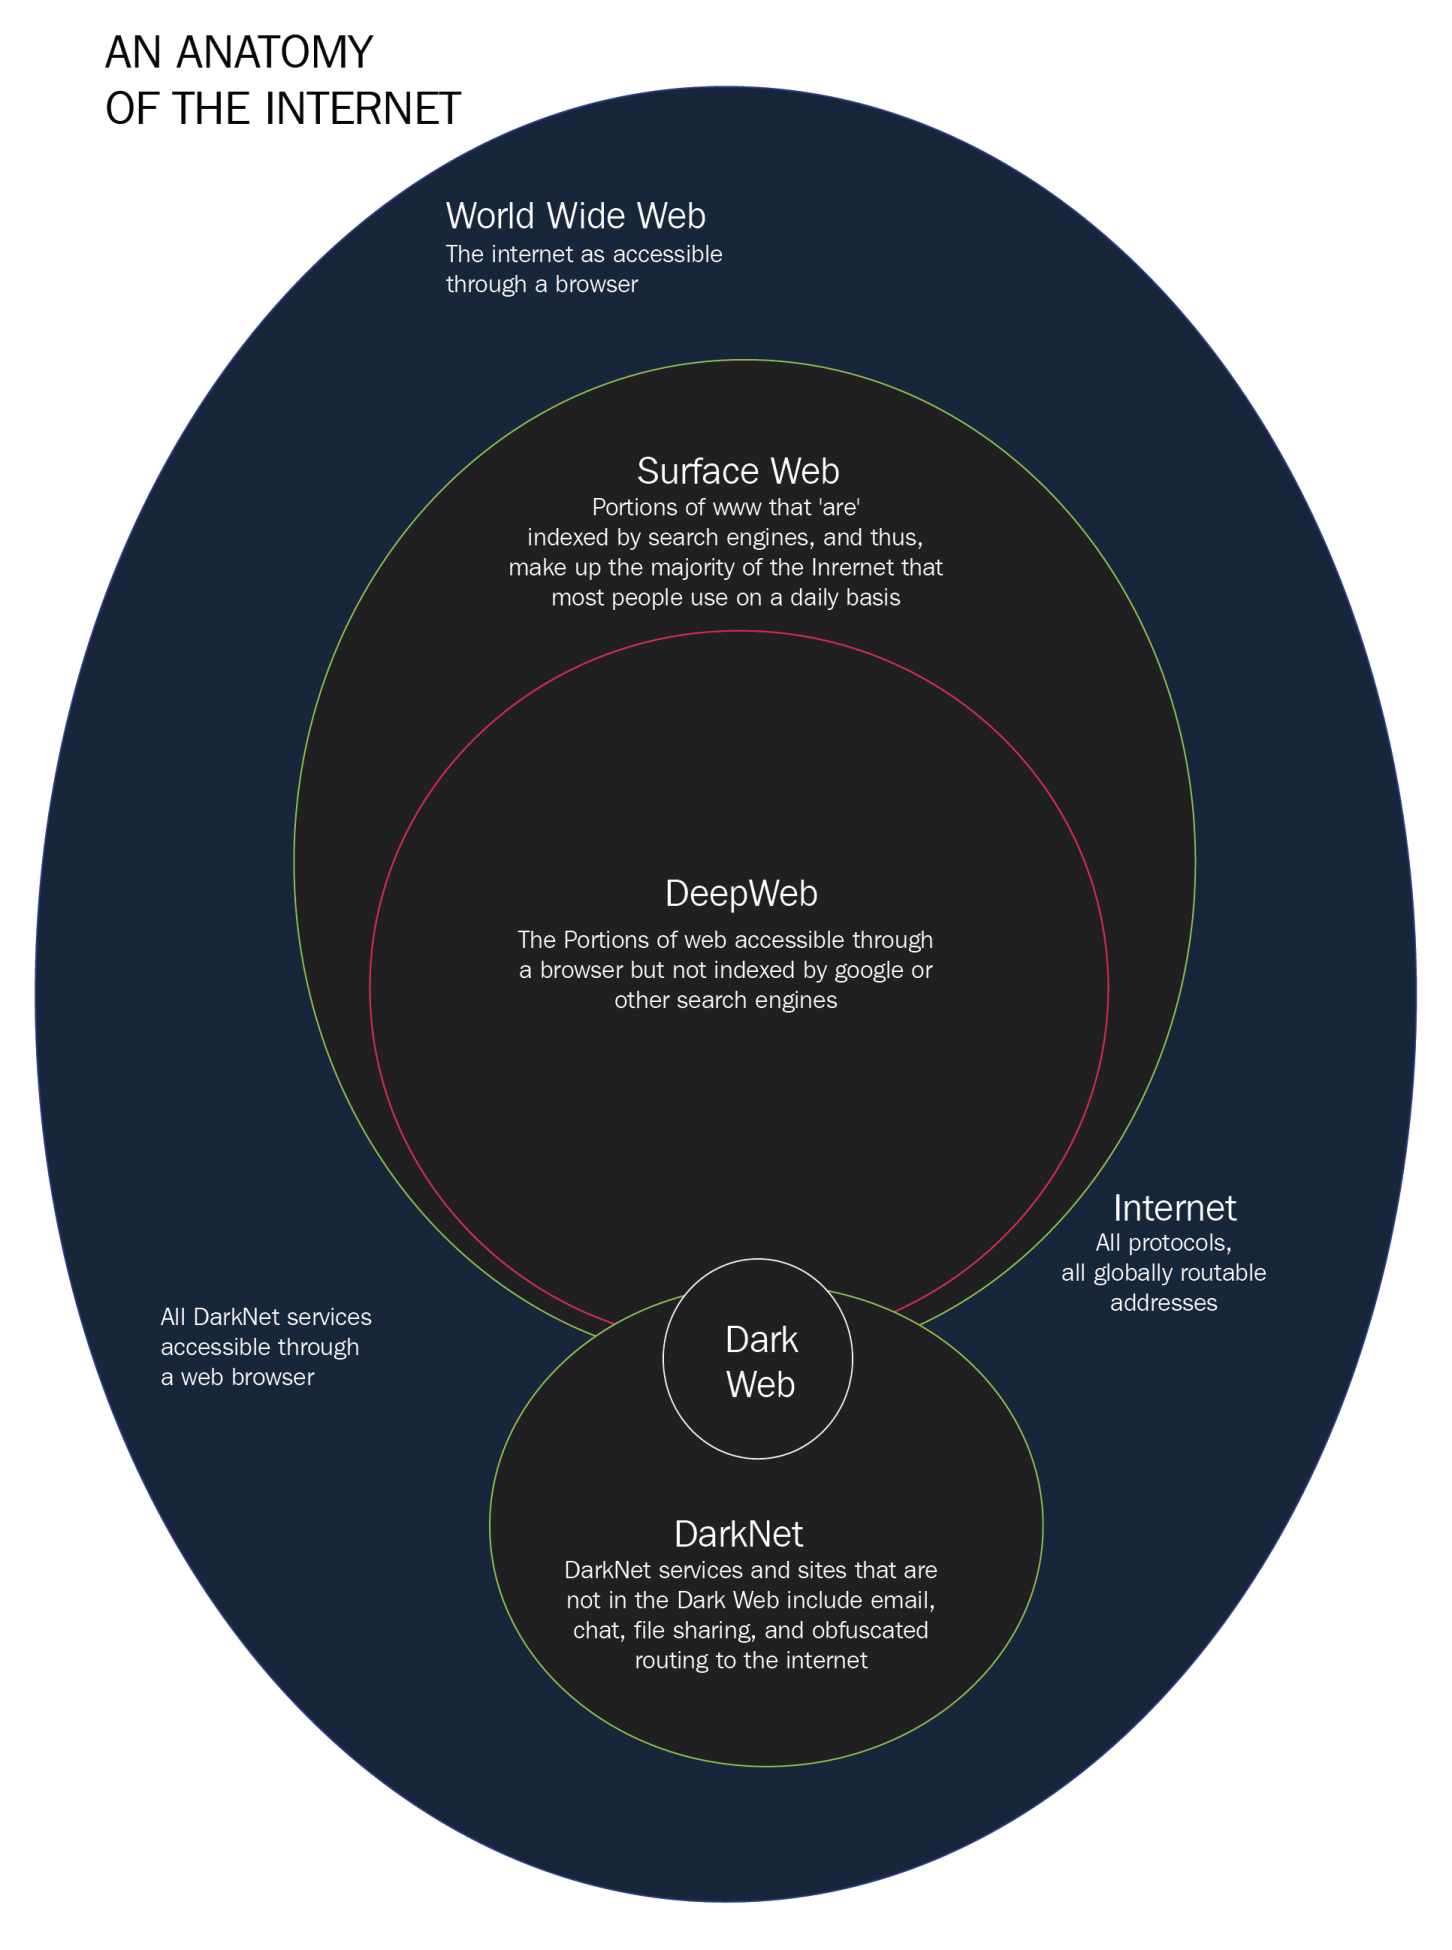 The Dark Web Hands On Analysis What Is A Browser Diagram As You Can See Internet Encompasses Deep Which In Or Under Surface And Net Yet Another Part